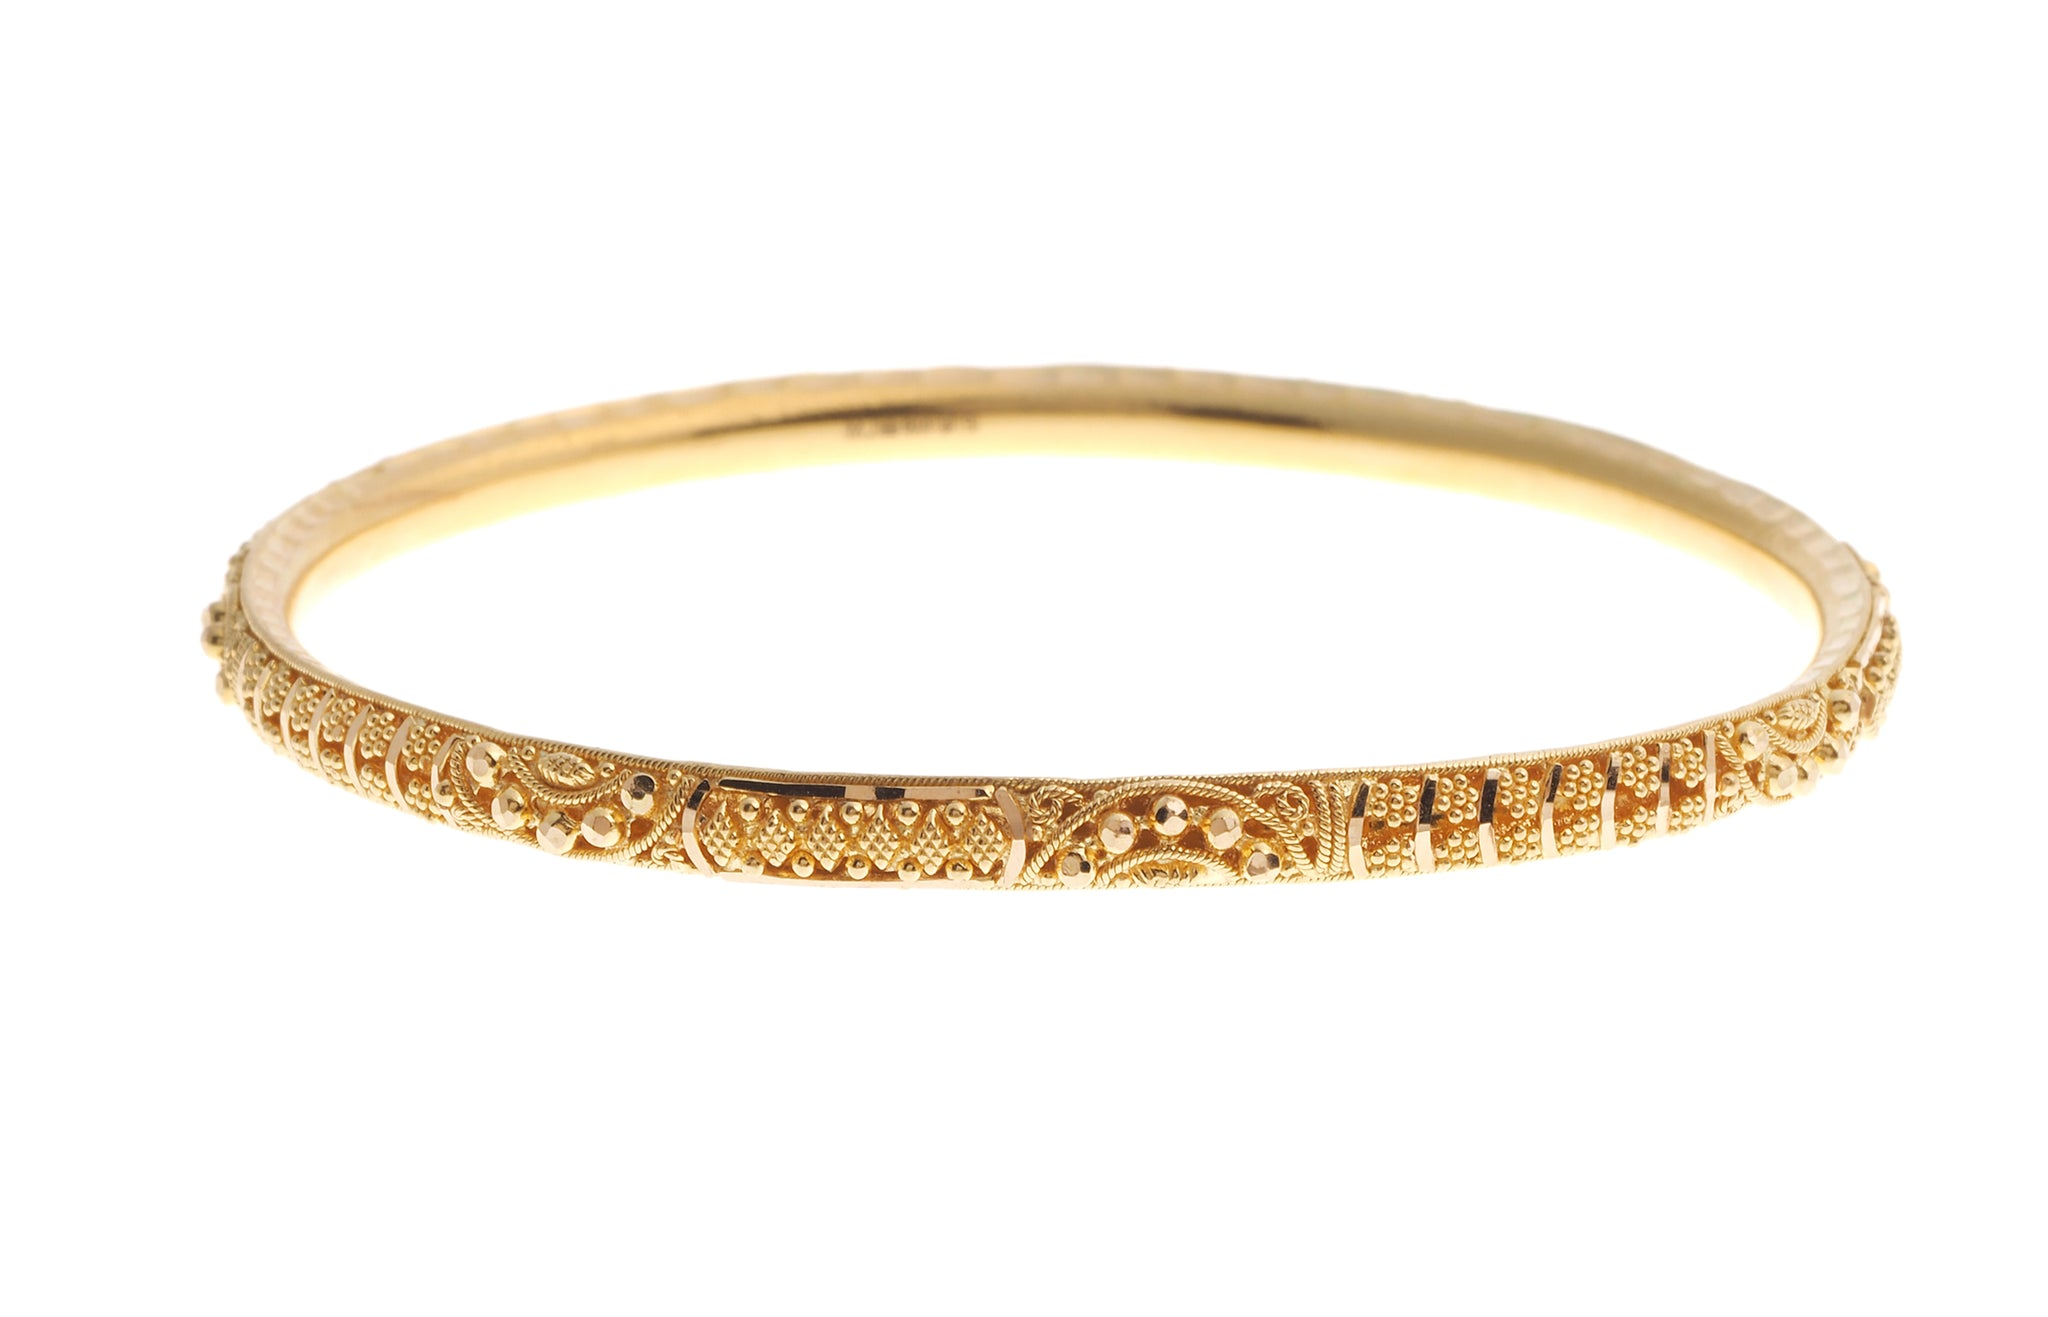 water gold kada bangles usd jewellery product detail plain bracelets bangle bracelet